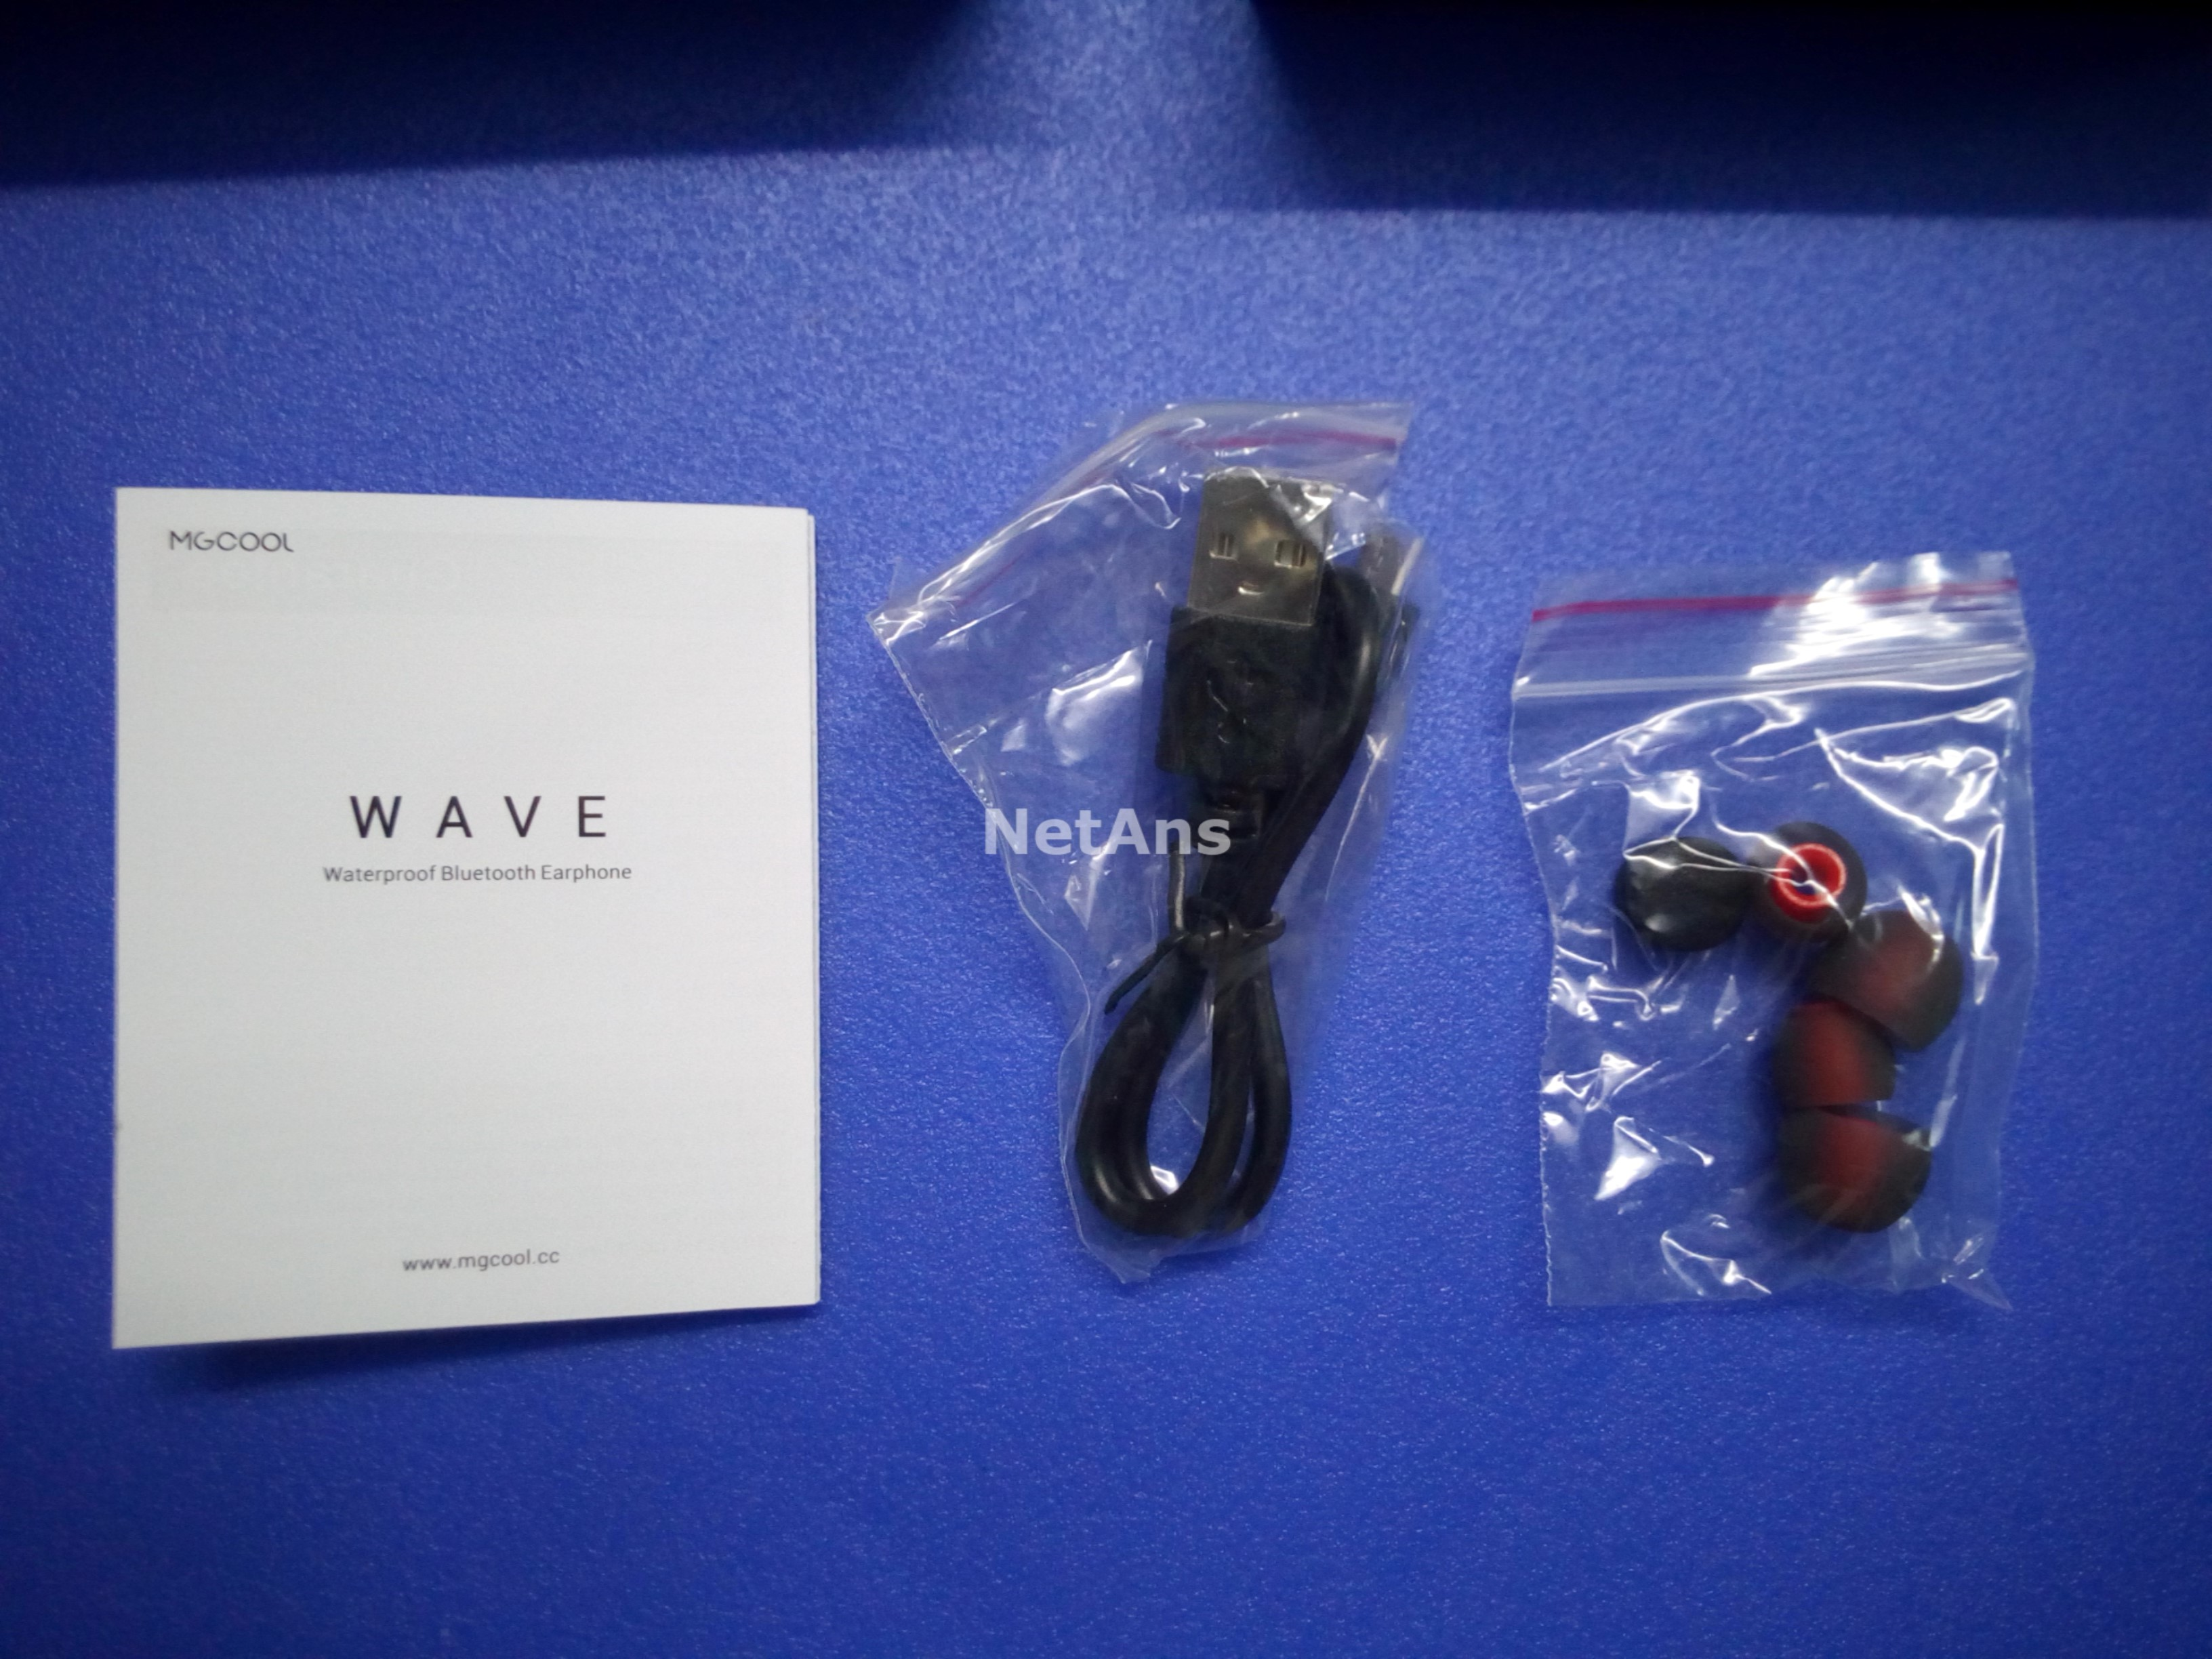 MGCOOL Wave accessories